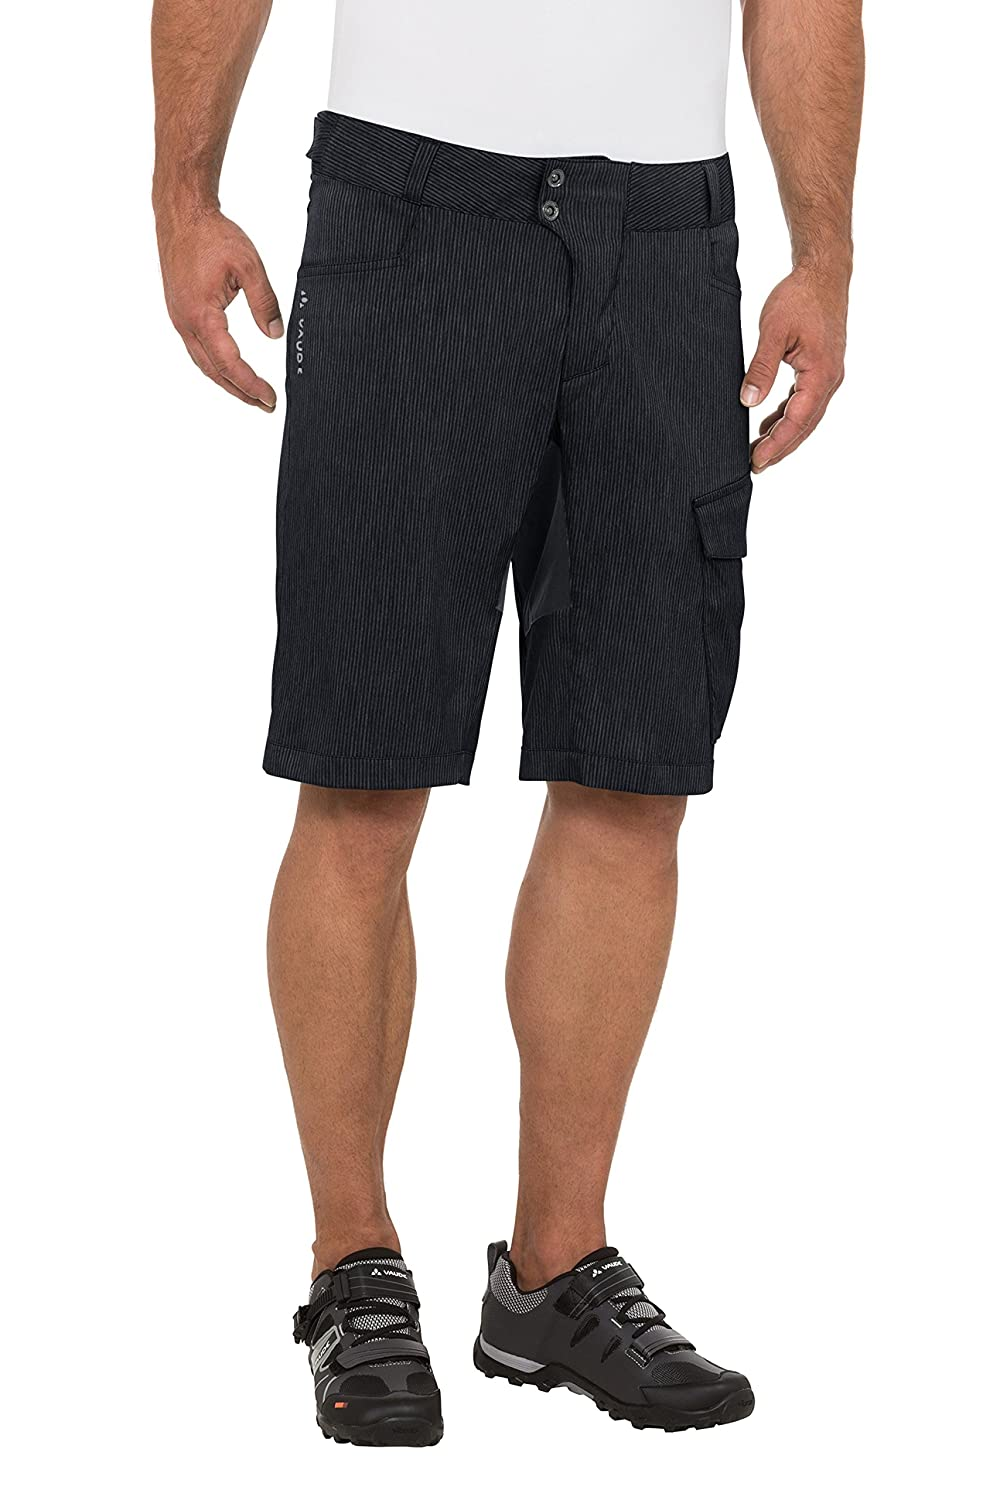 VAUDE Herren Hose Men's Tremalzo Shorts